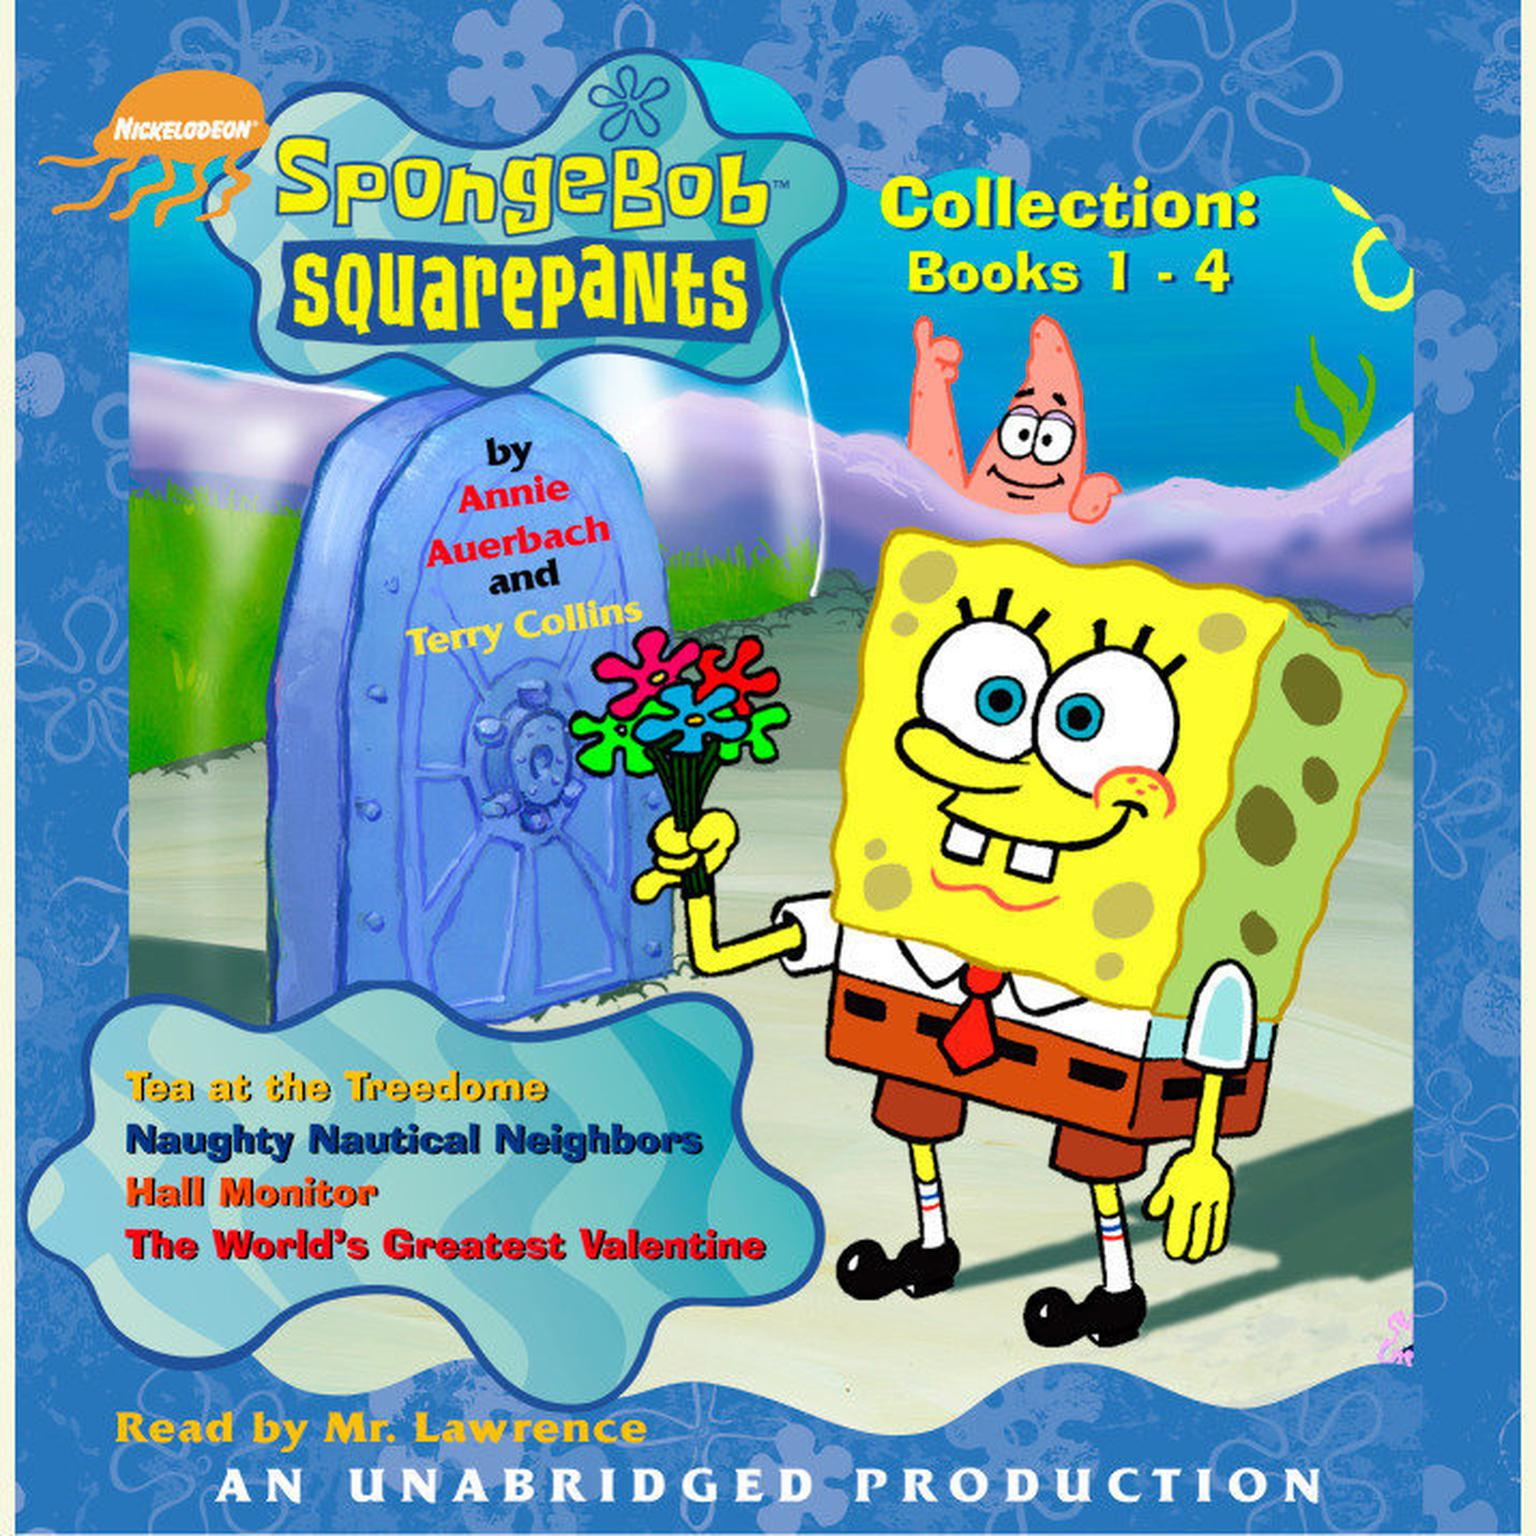 Spongebob Squarepants Collection: Books 1-4: #1: Tea at the Treedome; #2: Naughty Nautical Neighbors; #3: Hall Monitor; #4: The Worlds Greatest Valentine Audiobook, by Annie Auerbach